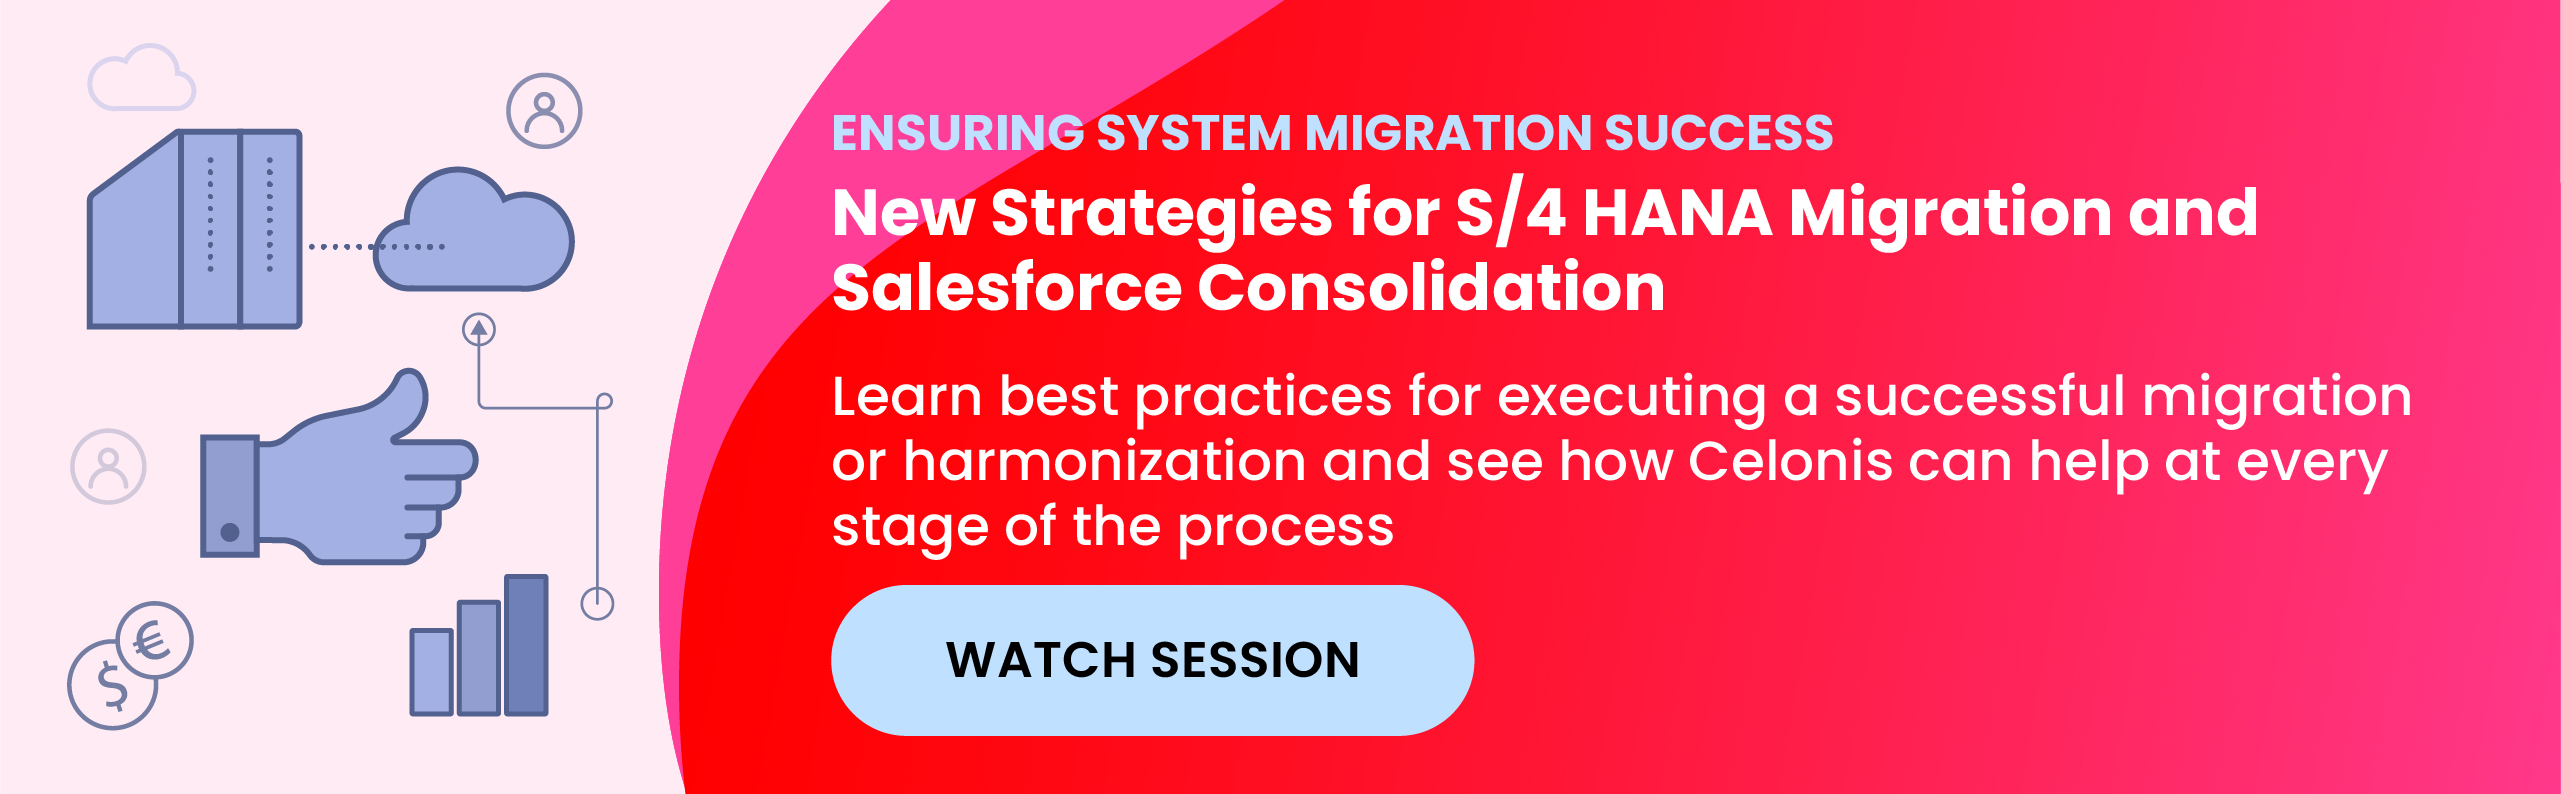 Ensuring System Migration Success: New Strategies for S/4 HANA Migration and Salesforce Consolidation